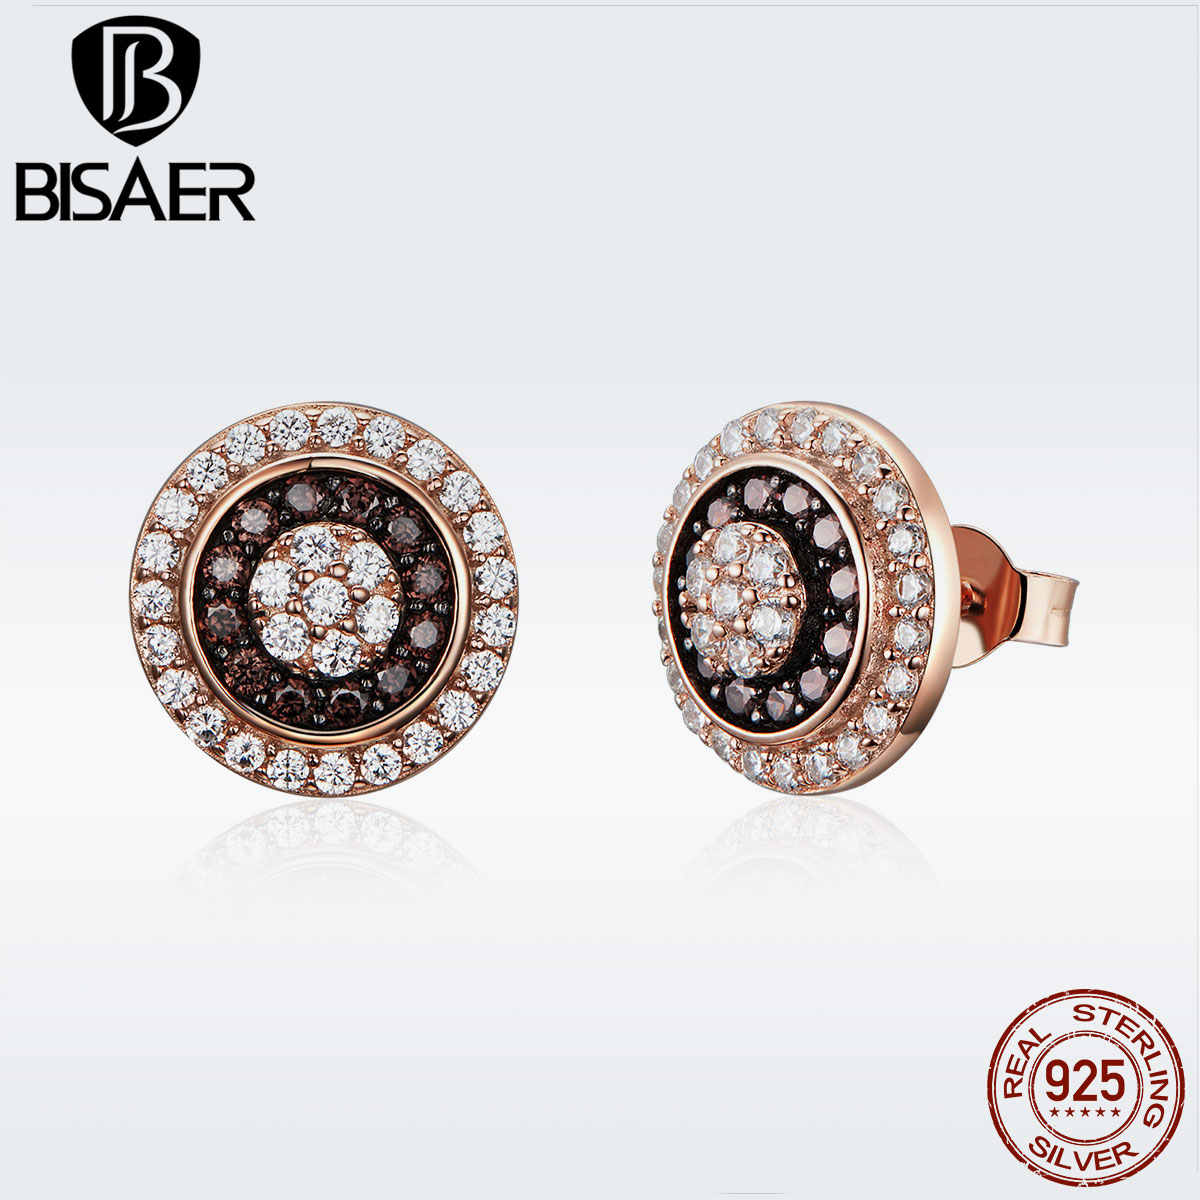 BISAER 925 Sterling Silver Gold Color Round Eye Stud Earrings for Women Vintage Fashion Jewelry Brincos Statement Jewelry GXE509